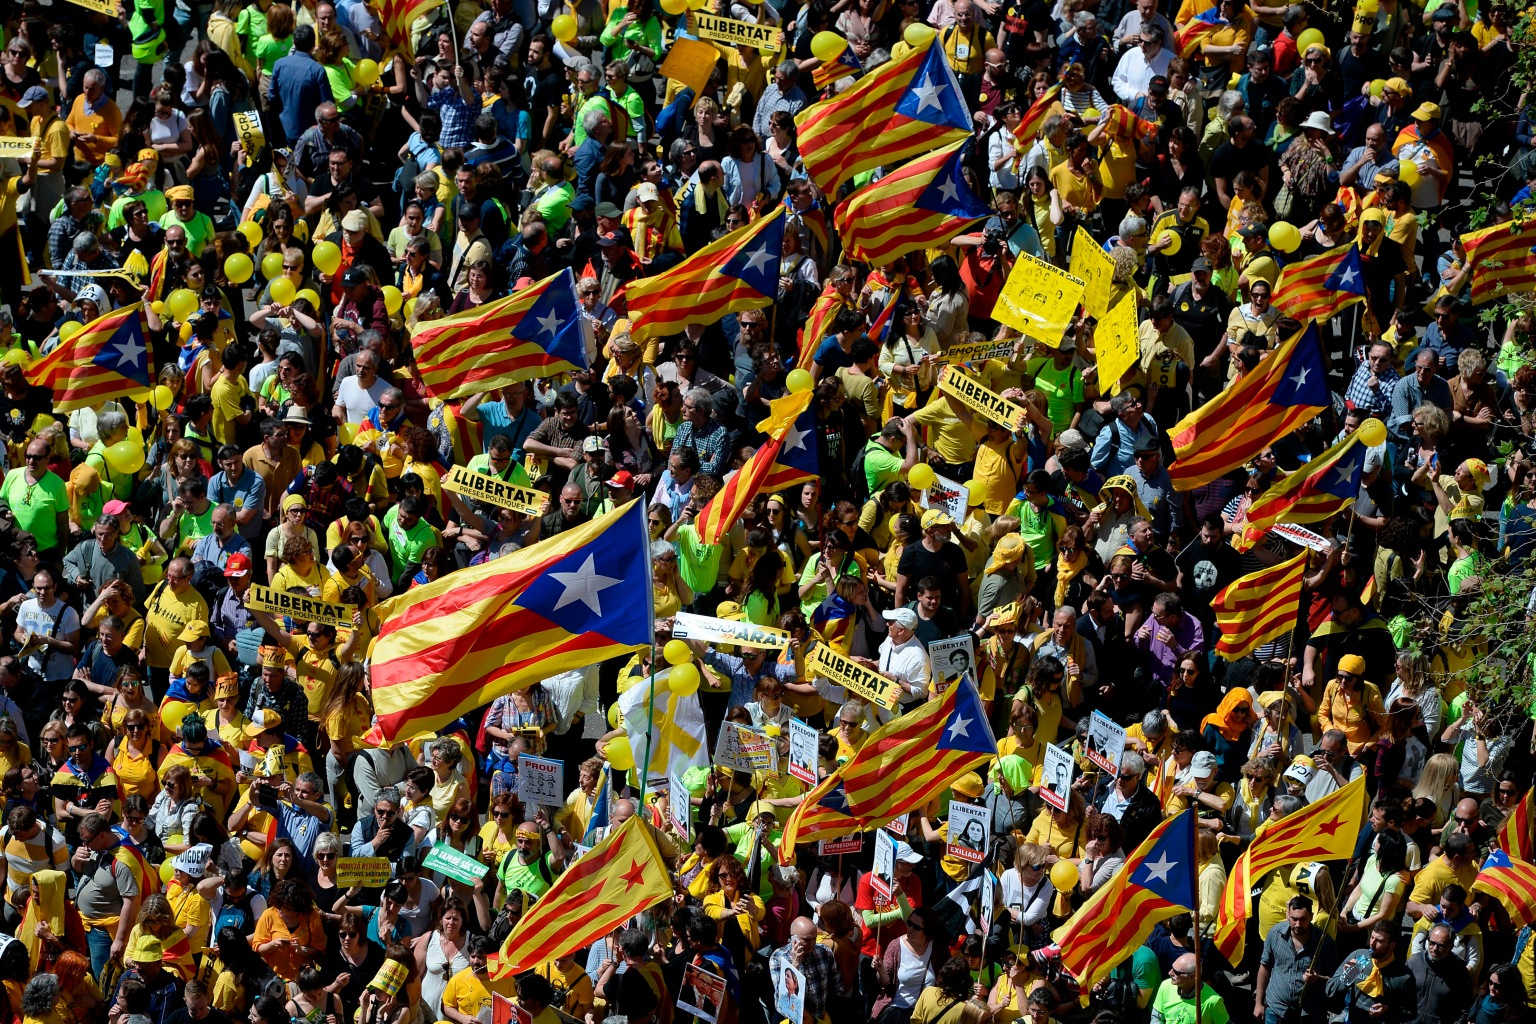 Protesters wave Catalan pro-independence flags during a demonstration to support jailed leaders and politicians in Barcelona on April 15. Thousands marched to protest the jailing of nine Catalan separatist leaders facing trial on rebellion charges for their roles in last year's failed effort to break off from Spain. JOSEP LAGO/AFP/Getty Images